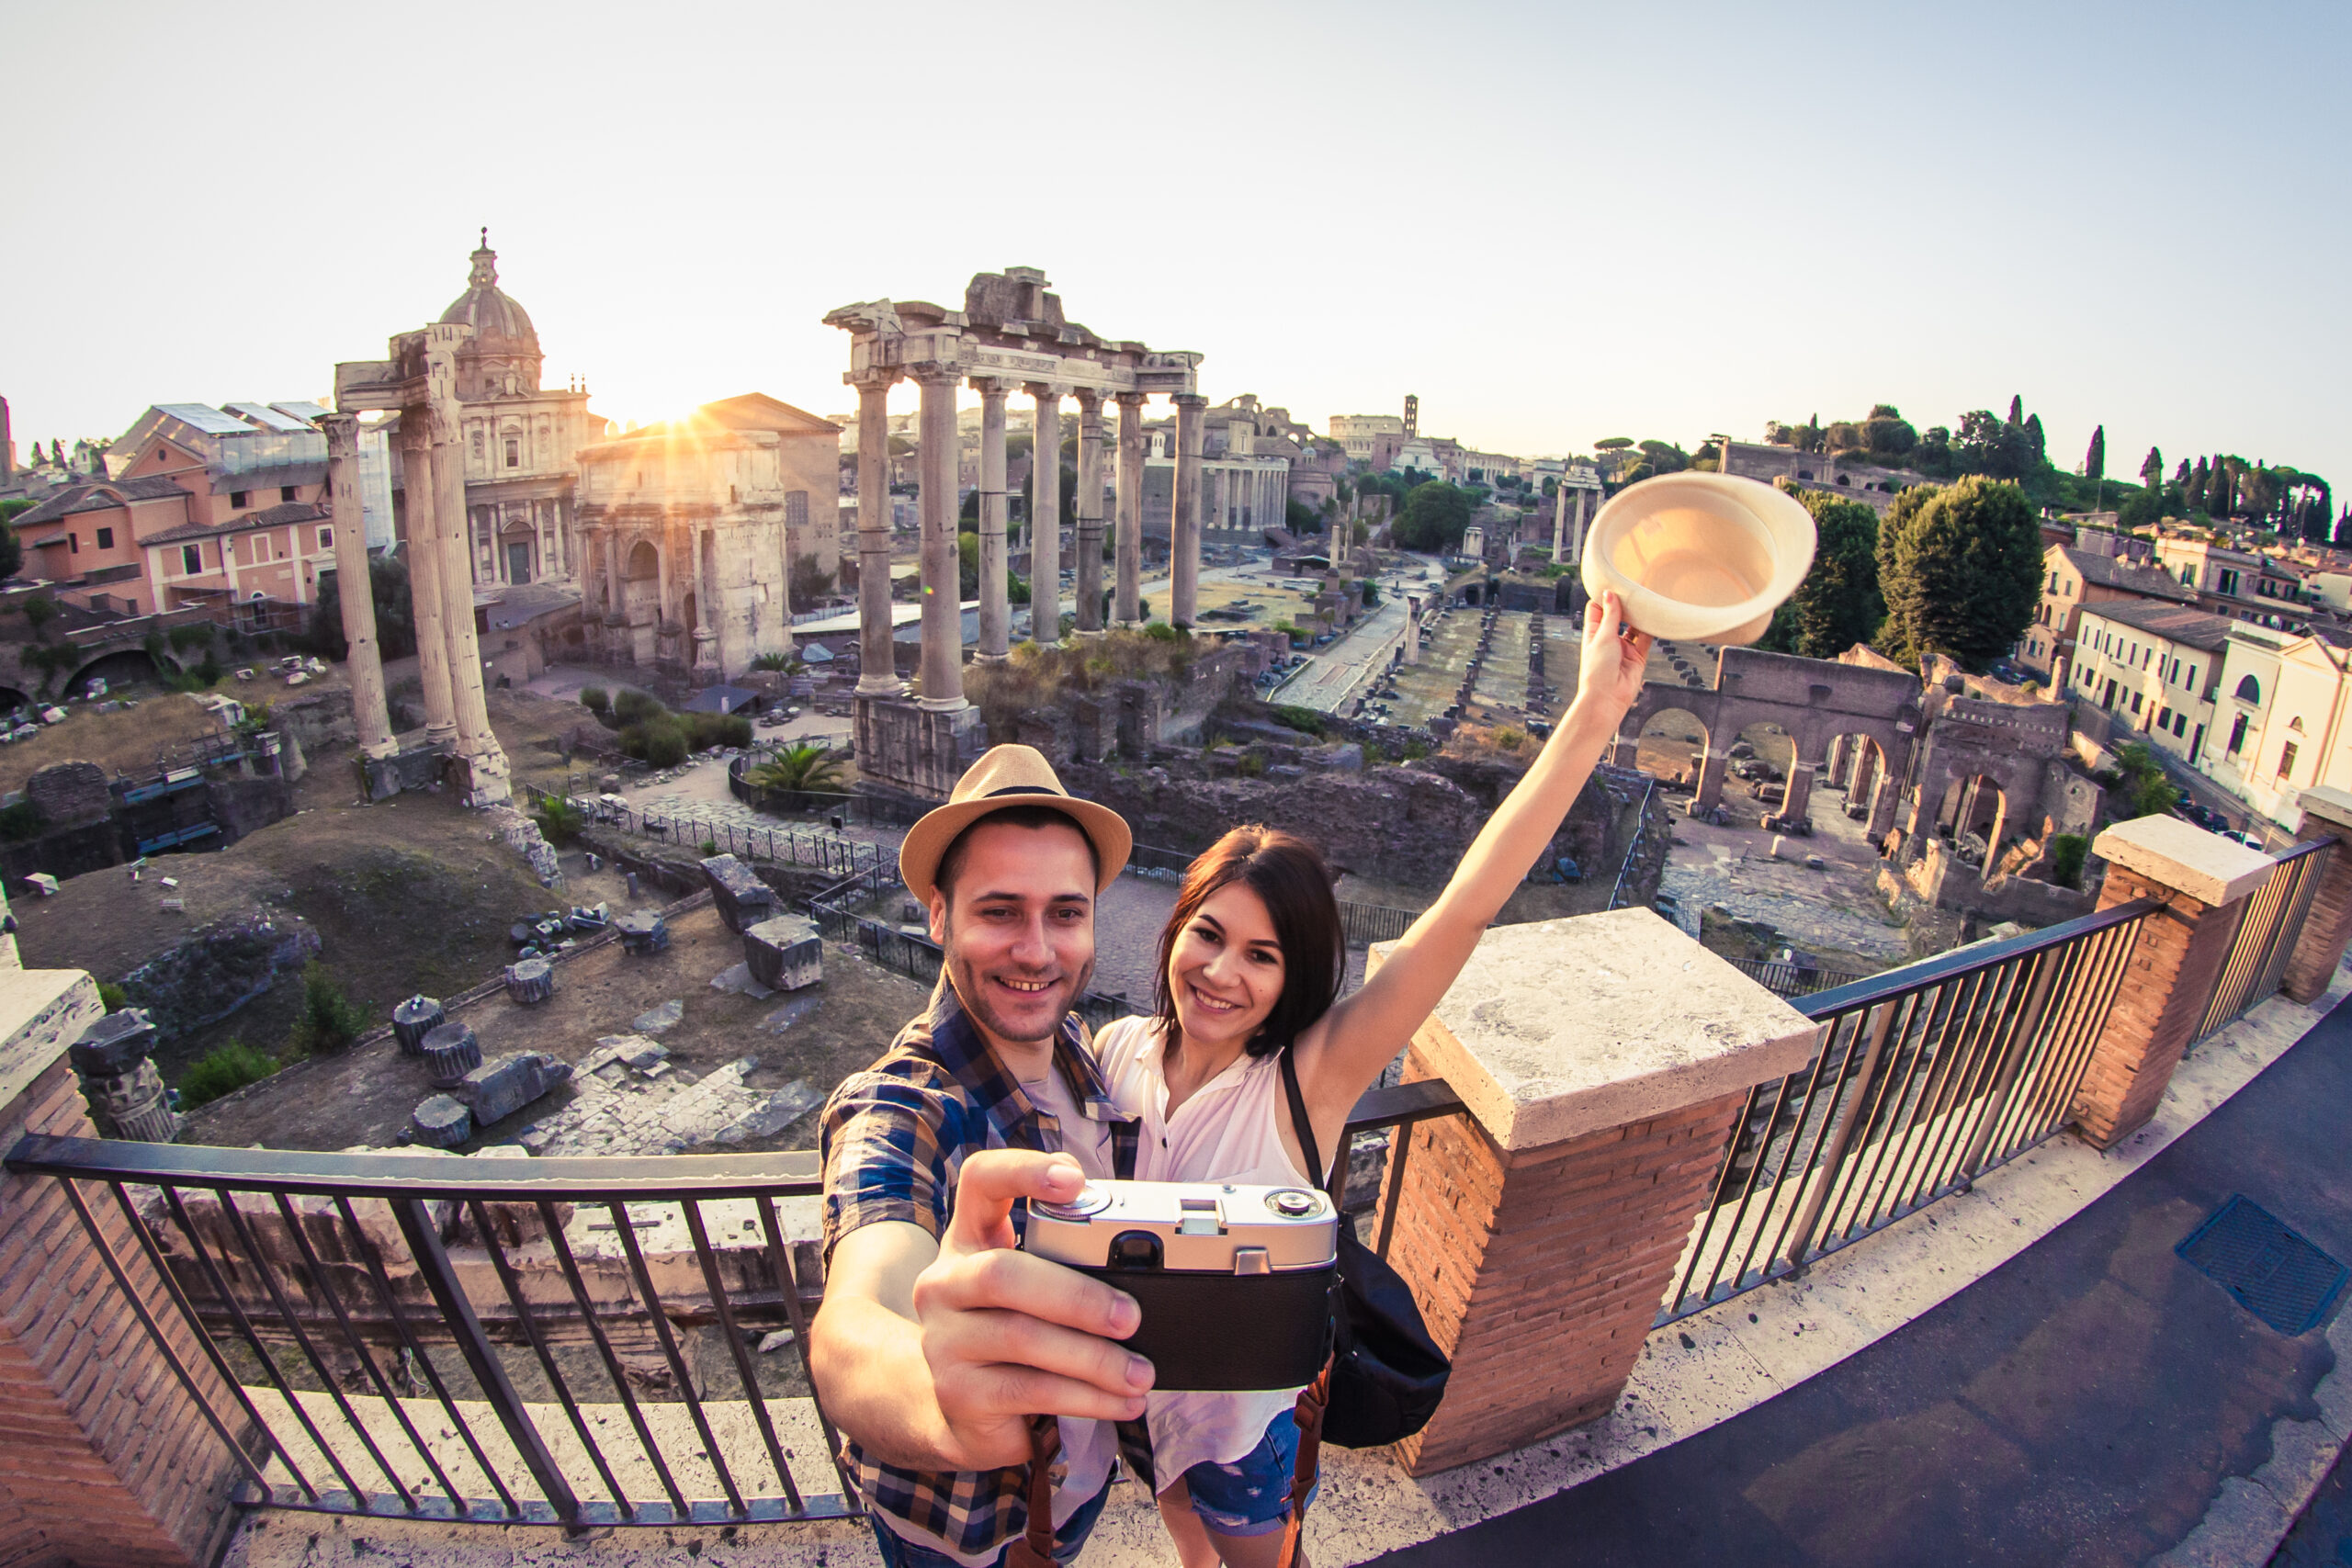 Vatican City Private Tours to visit the best of what Rome has to offer in 1 day. Rome Highlights, Colosseum and Vatican Museum one day private tour